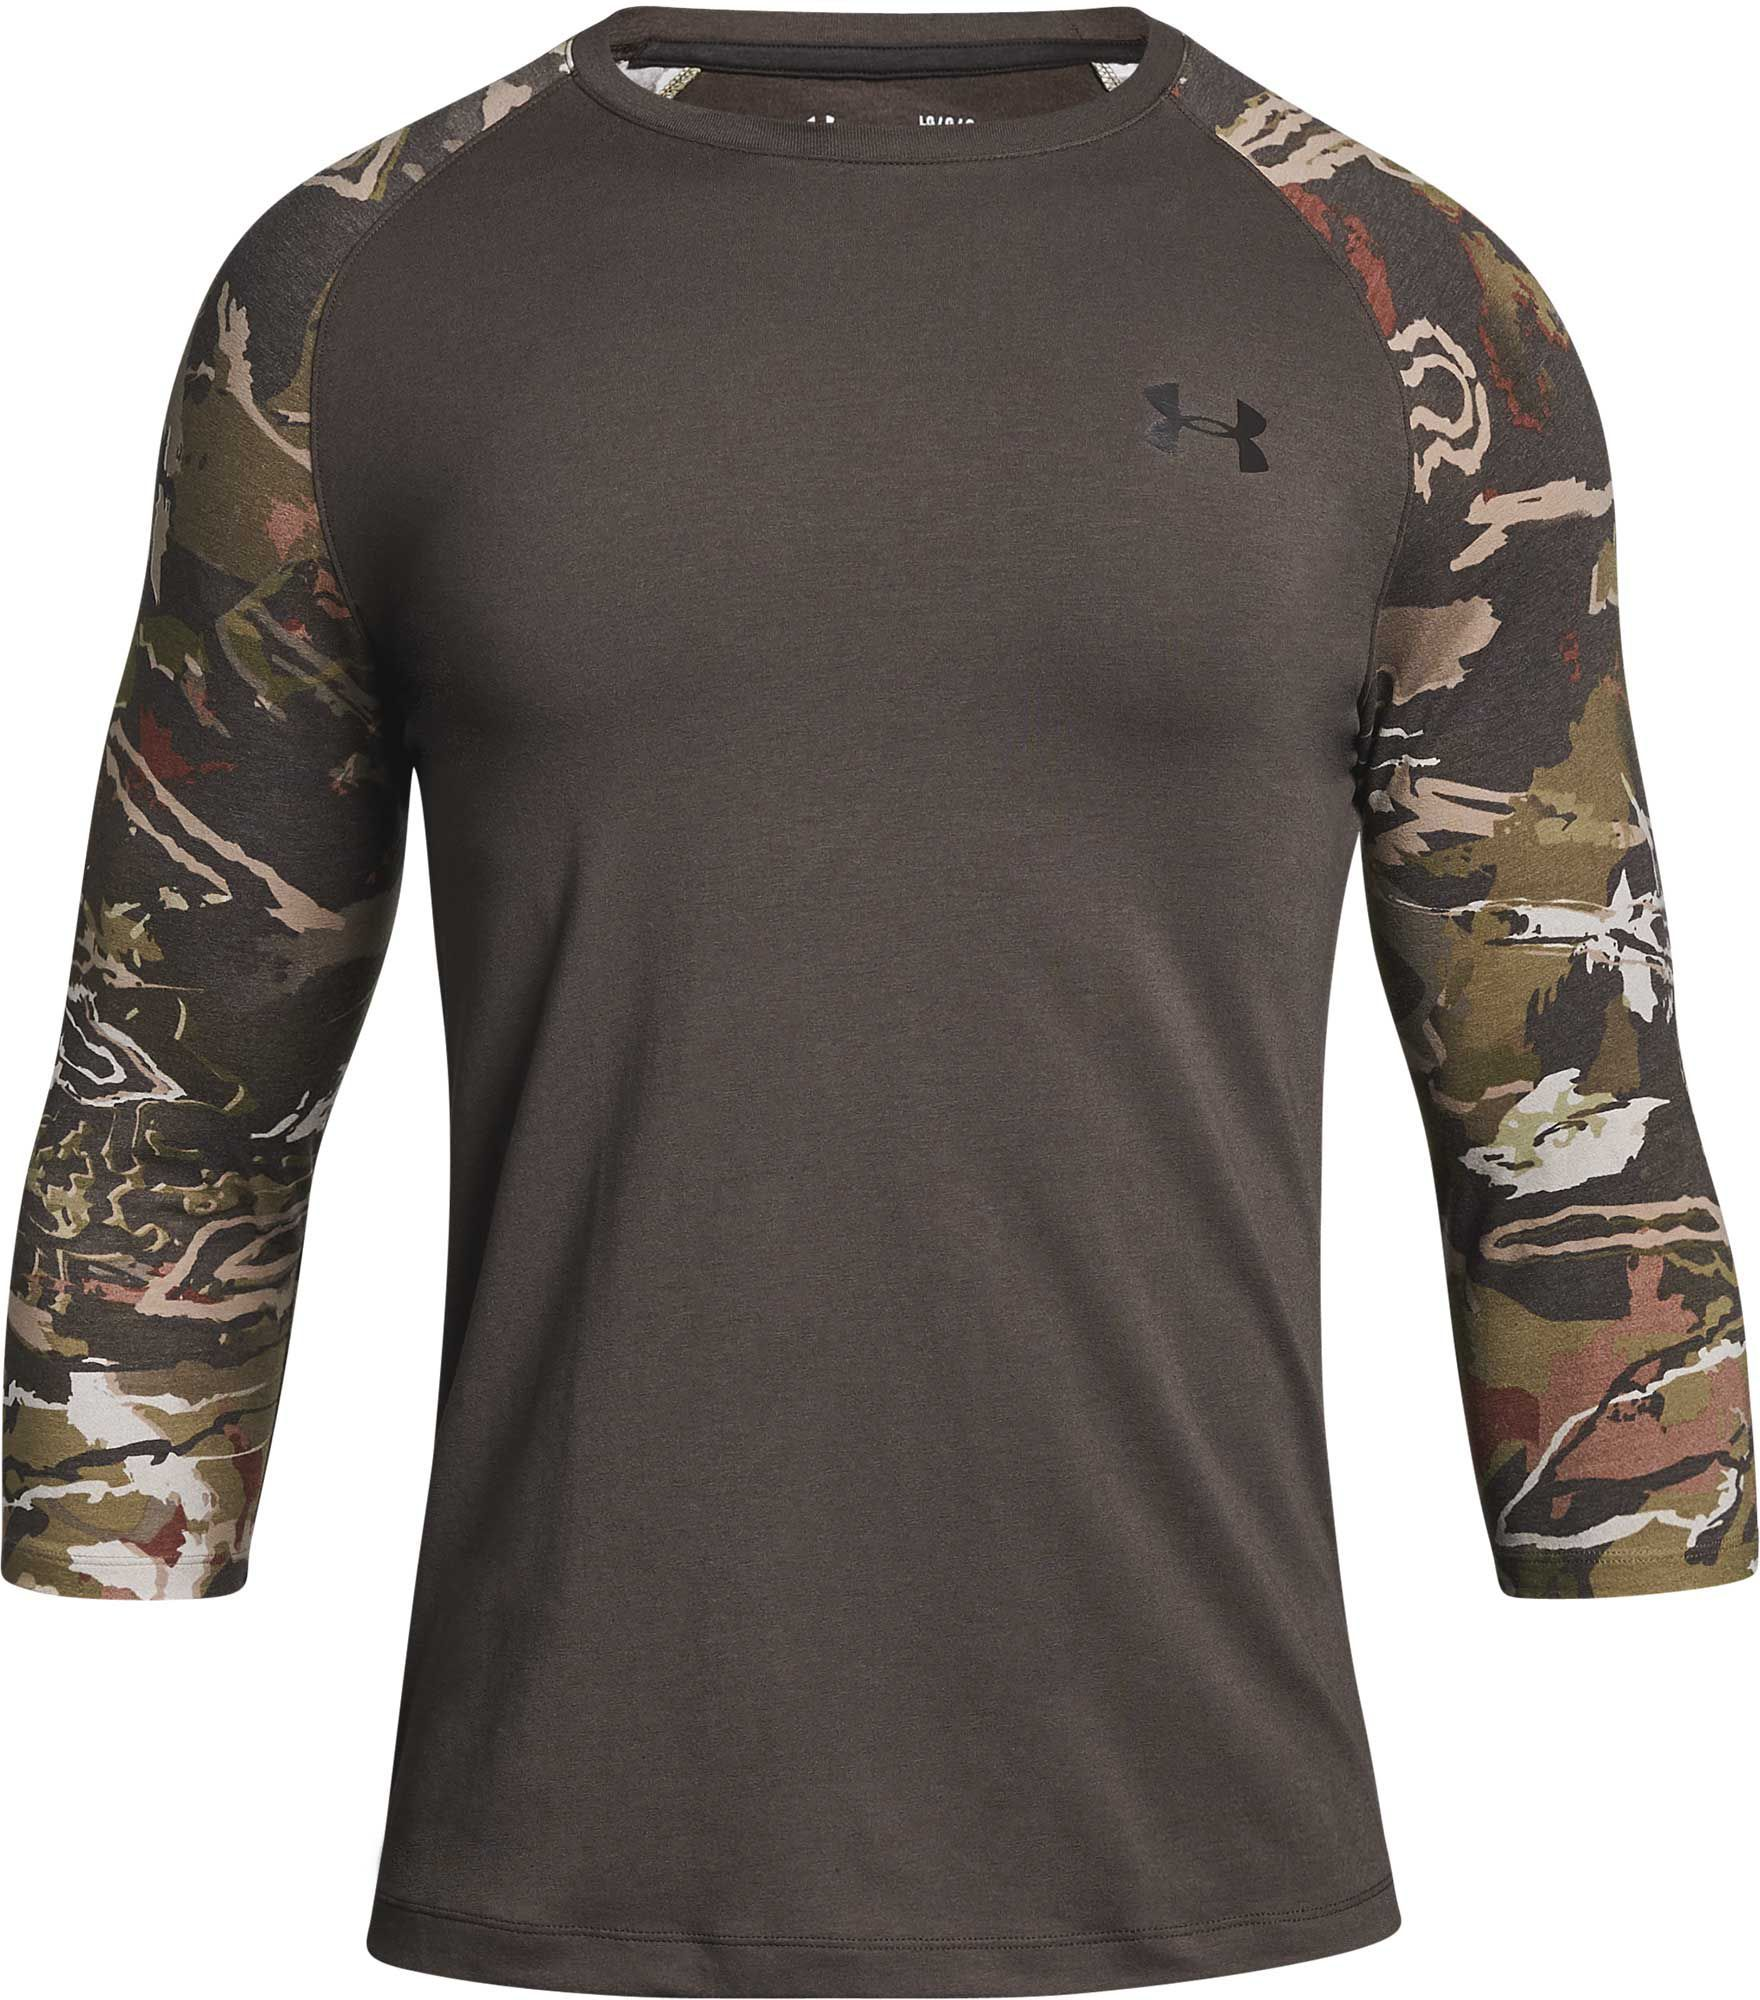 9af3a8a520d0c Under Armour Men's Ridge Reaper Hunting Long Sleeve Shirt, Size: Medium,  Brown